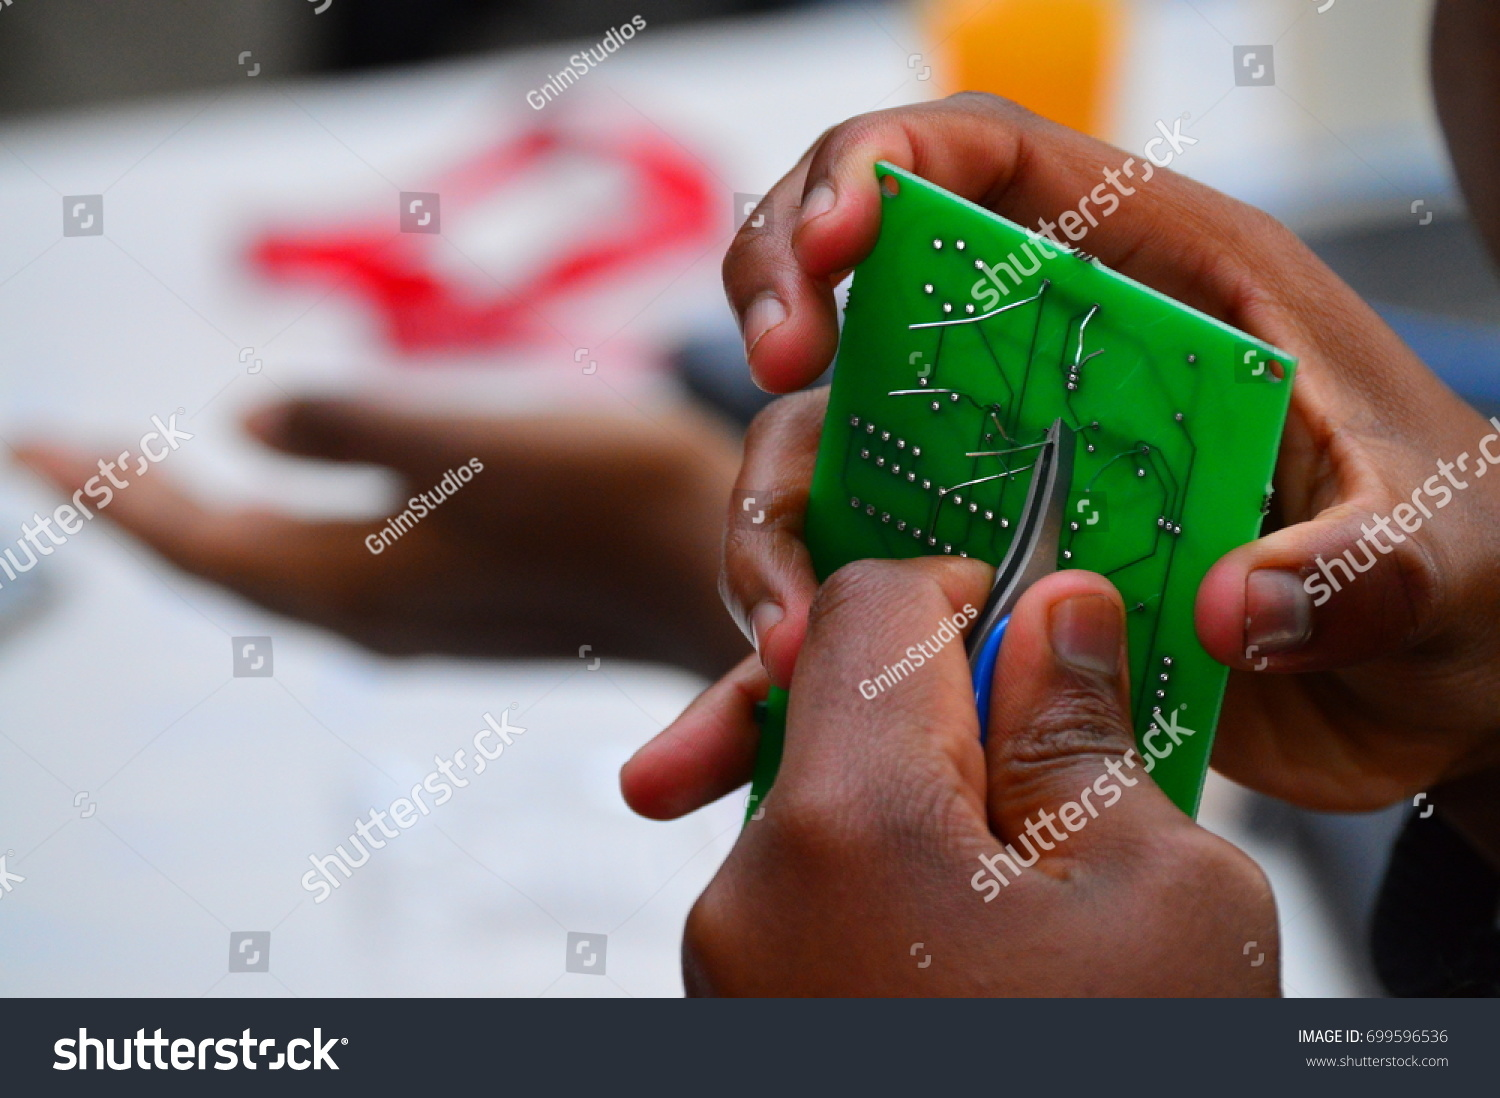 Hand Holding Printed Circuit Board Pcb Stock Photo Edit Now Cutter Images Of The Using Cut Pliers To Clip Off